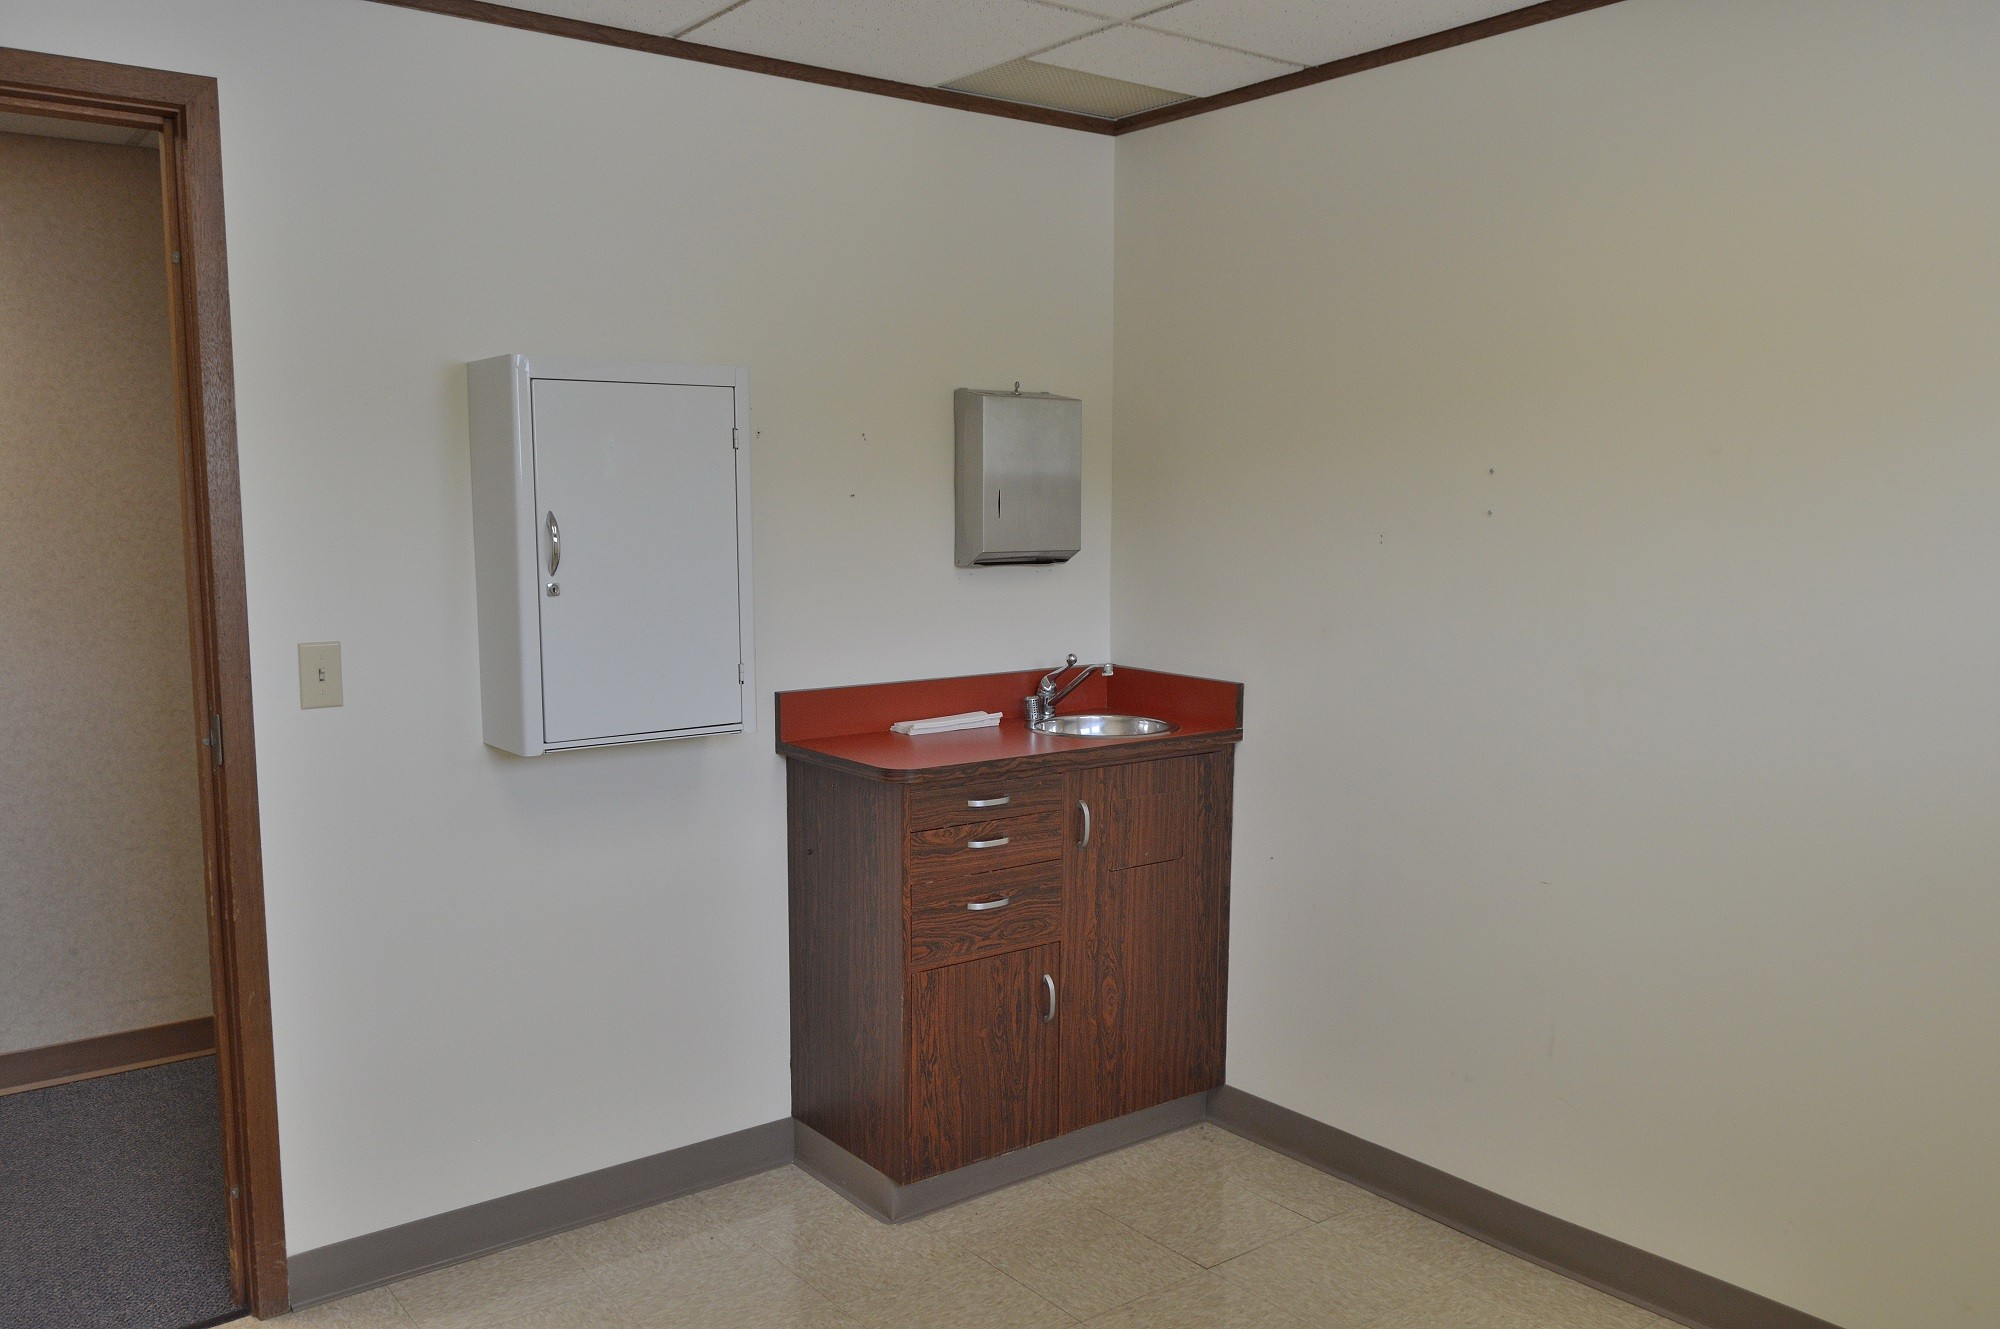 Exam room 2nd view